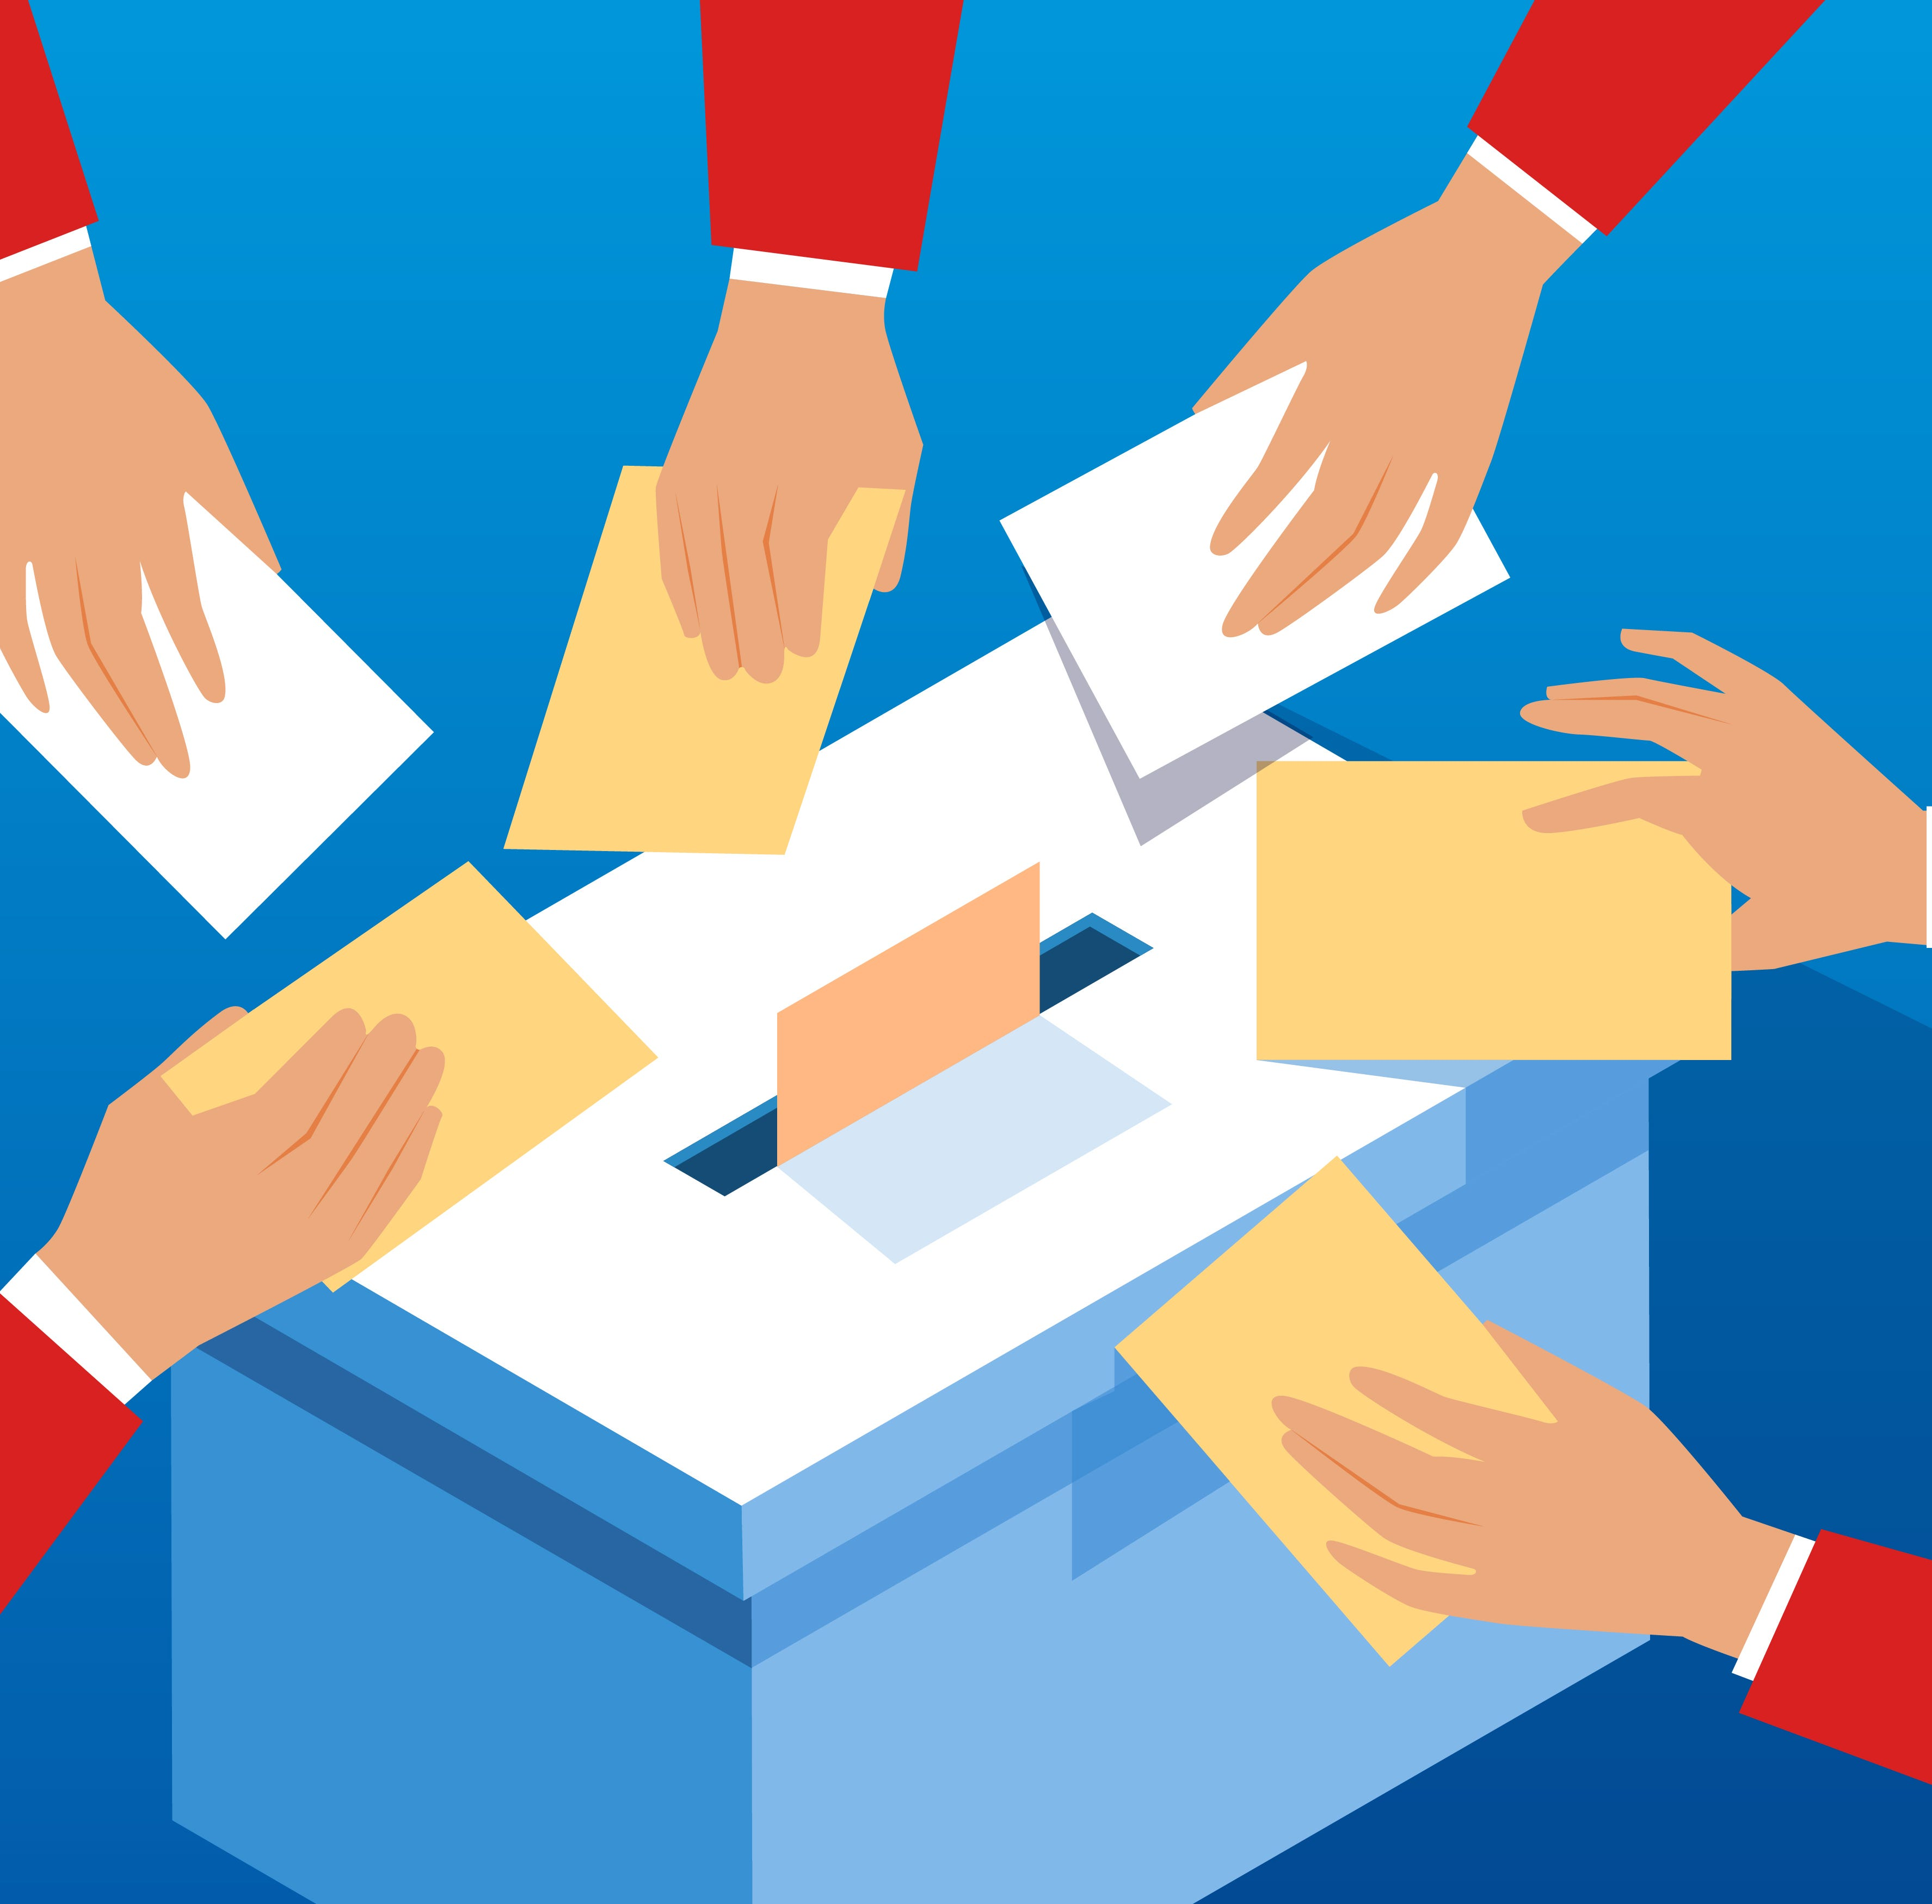 Voting hands and ballot box